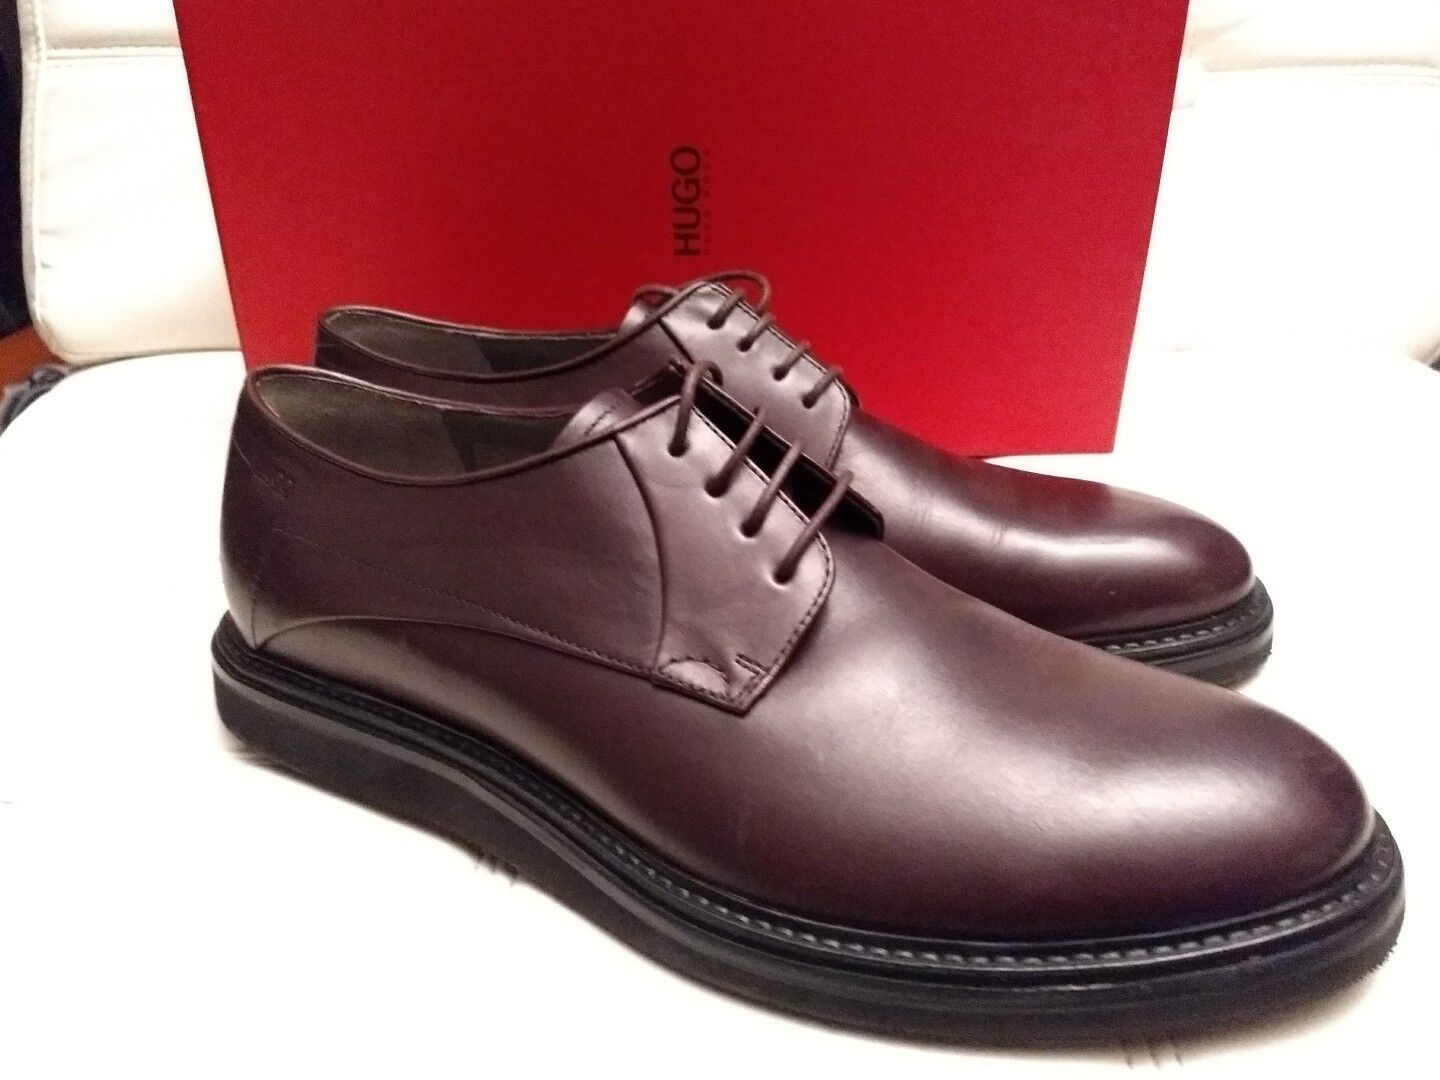 NEW Hugo Boss Burgandy Leather Dress shoes Livetech soles US 11 MSRP